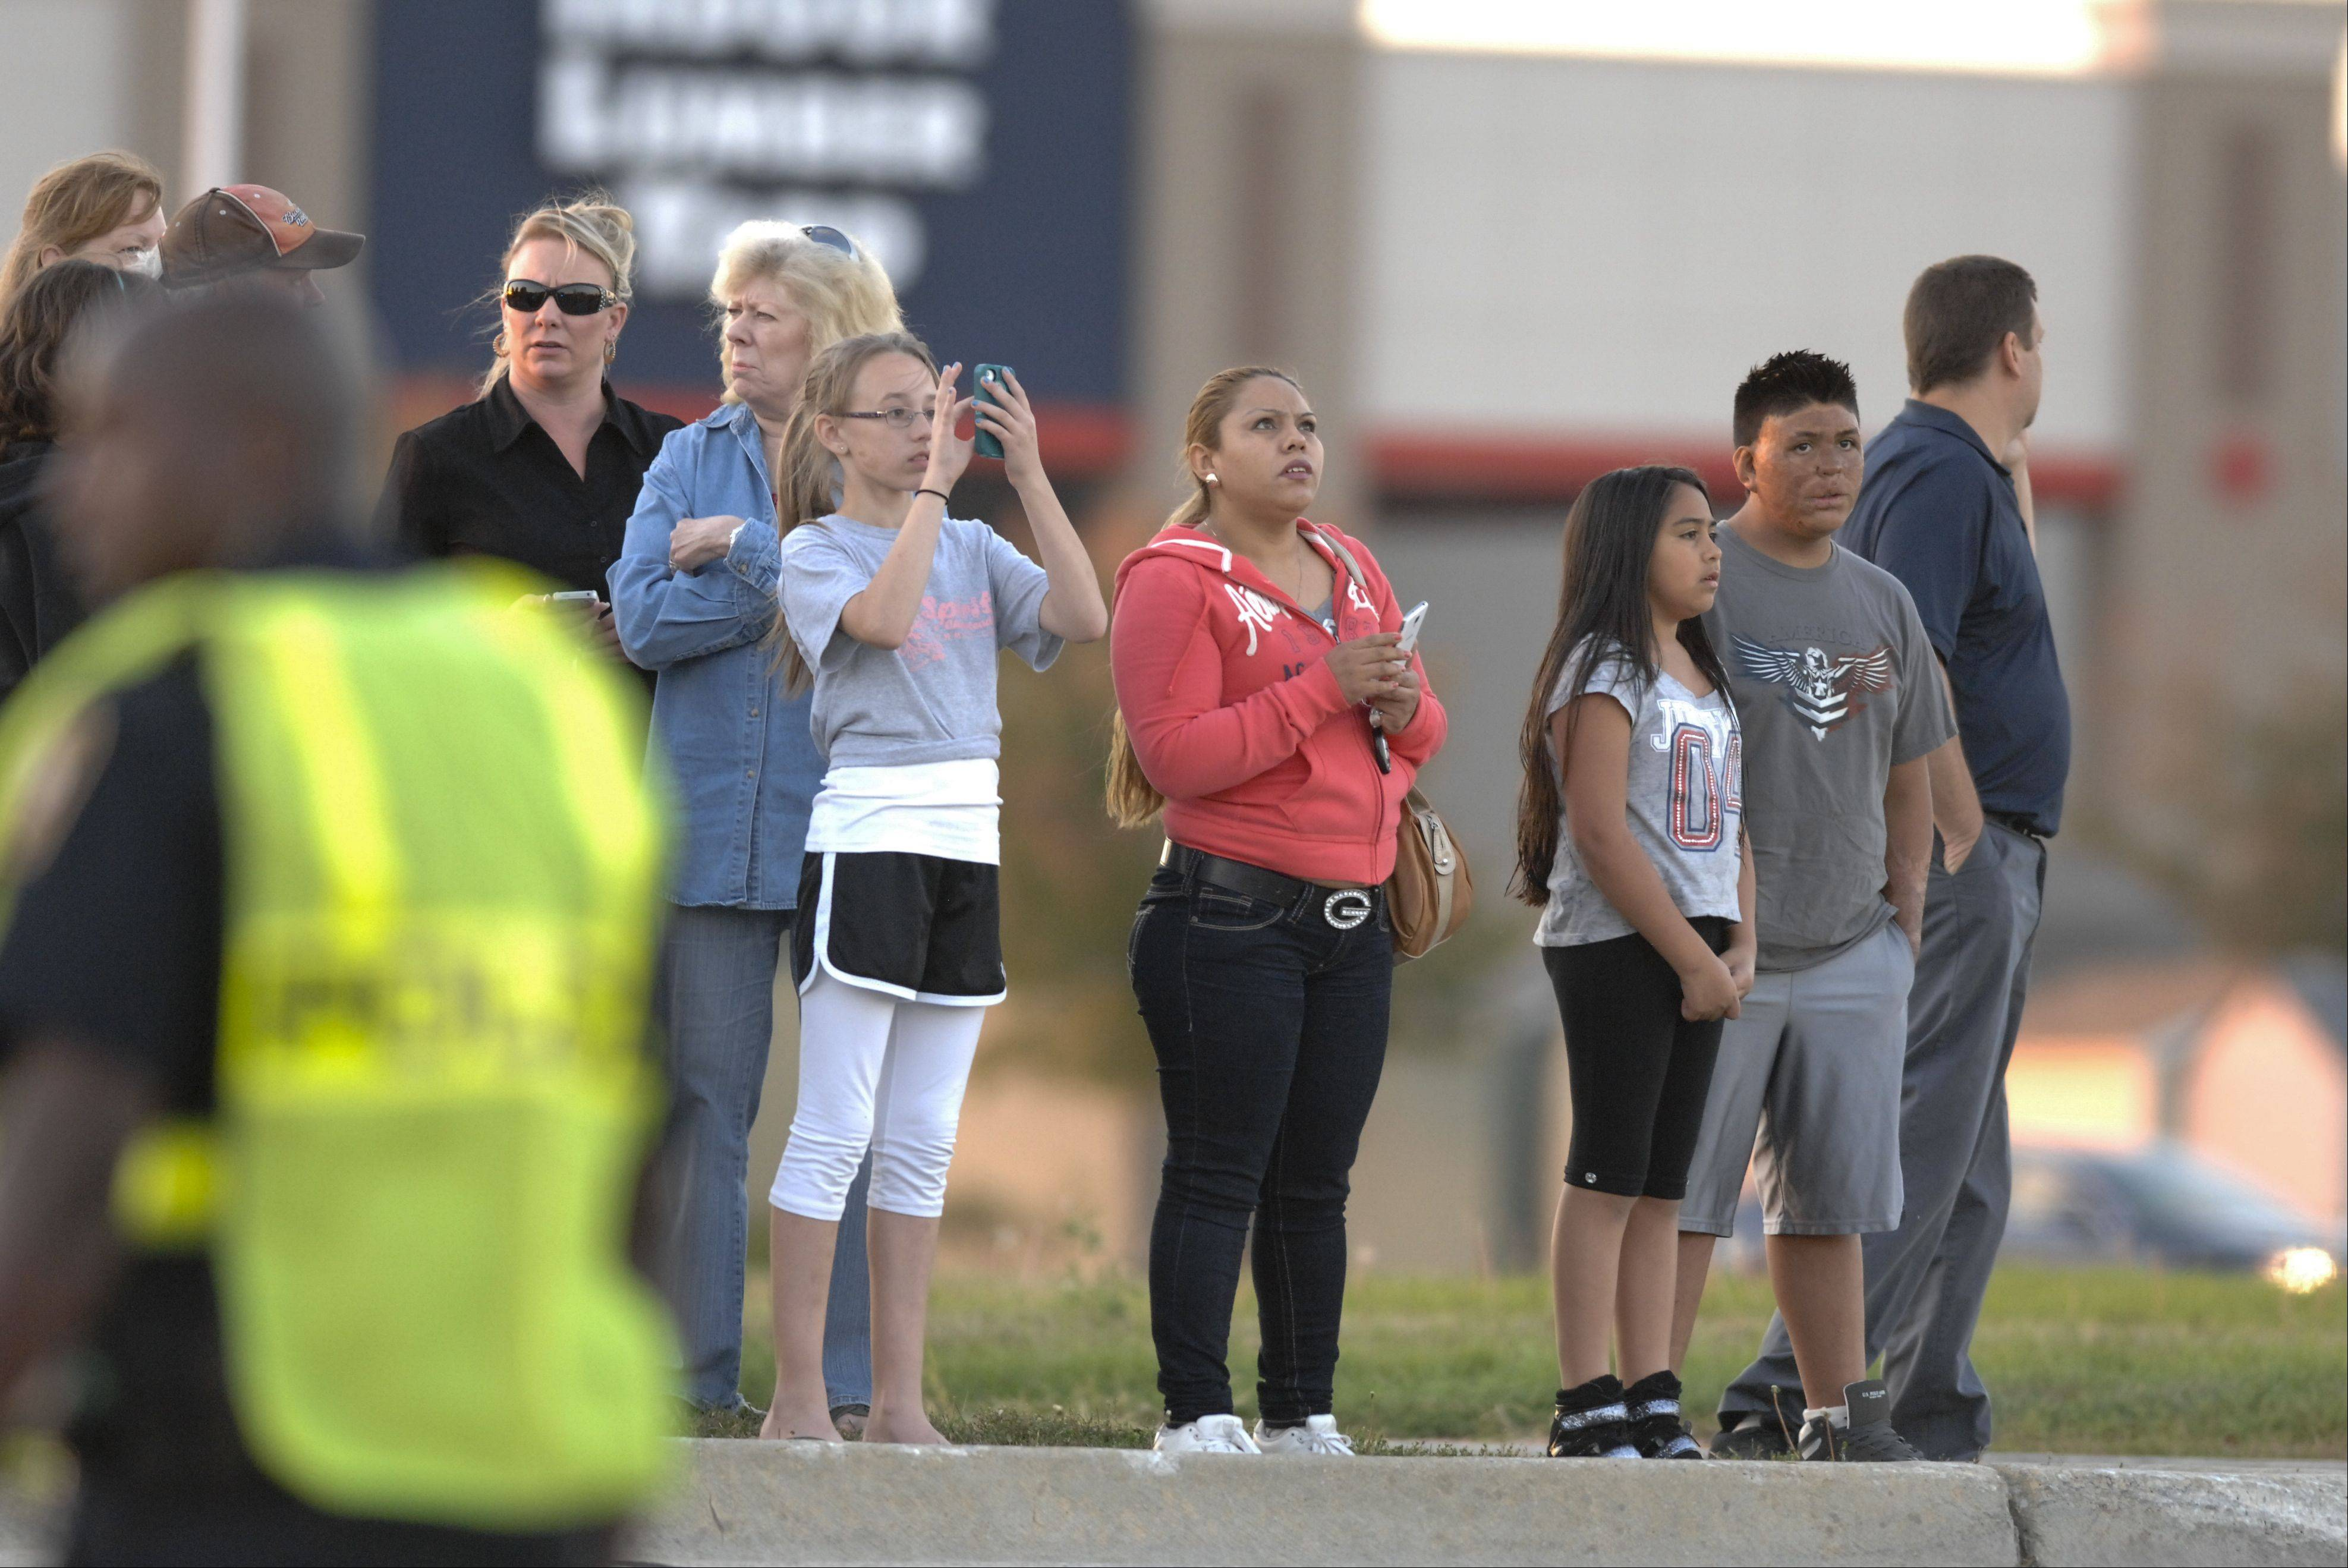 Onlookers take photos and watch as investigators examine the site of a plane crash in the parking lot of a Chase bank on Weber Road near the Clow International Airport in Bolingbrook on Wednesday.